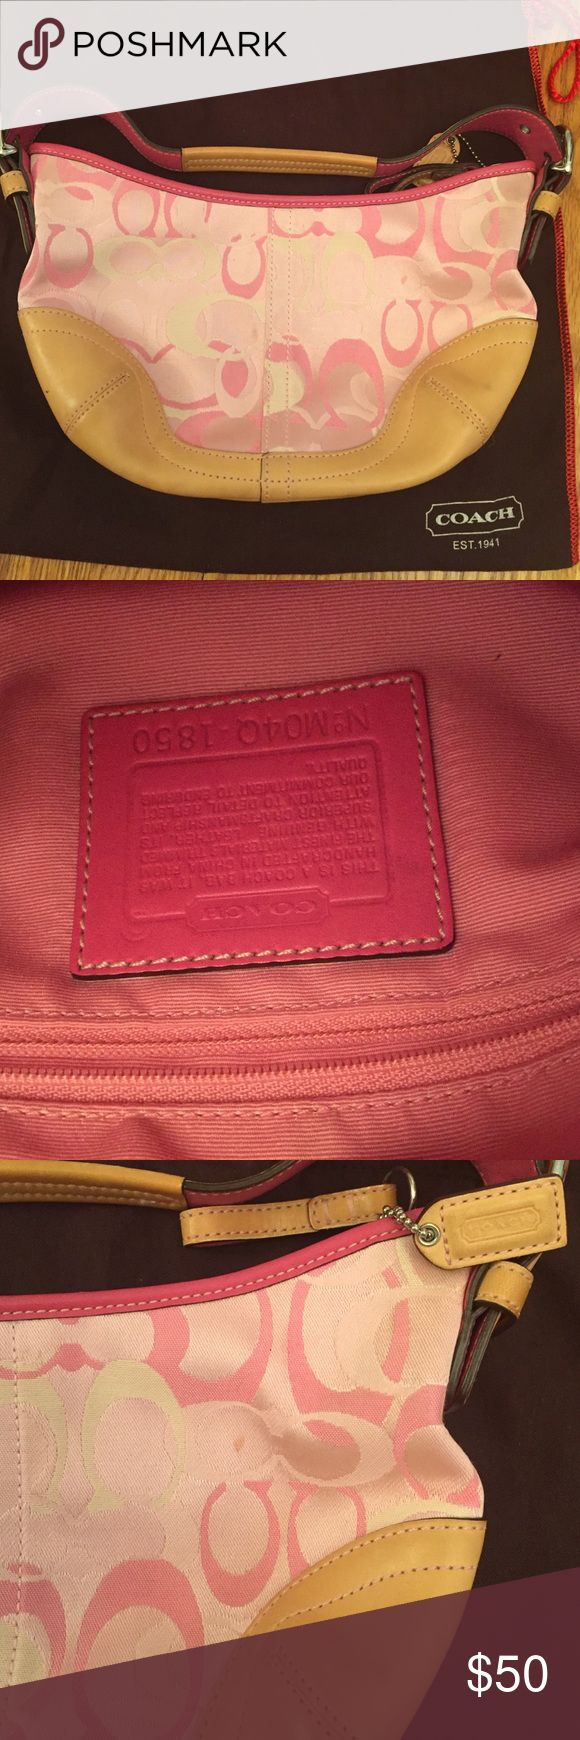 """Pink Coach purse Gently used Pink Small Coach purse. White, light pink and dark pink """"C""""s. Comes with original coach bag. Only used a few times and has never been washed, has a few small marks on it that may come out if cleaned. Otherwise looks brand new and has been kept away. Coach Bags Mini Bags"""